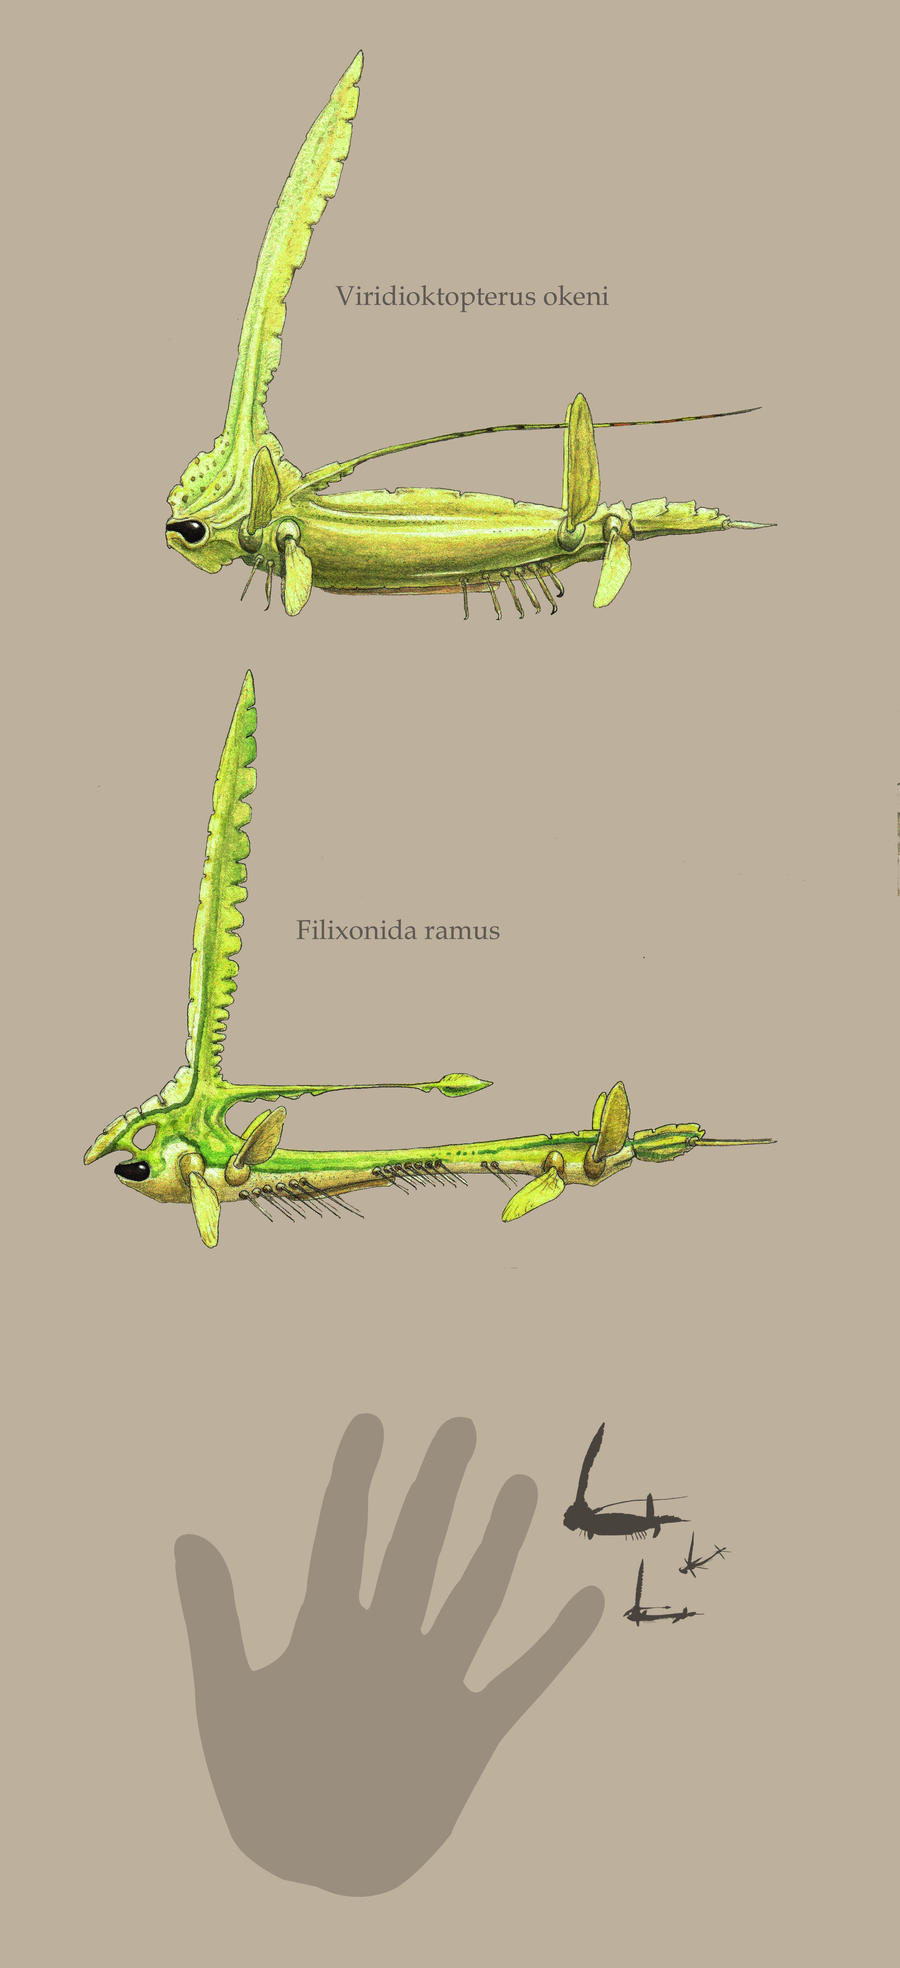 Viridioctopterus and Filixonida by Hyrotrioskjan